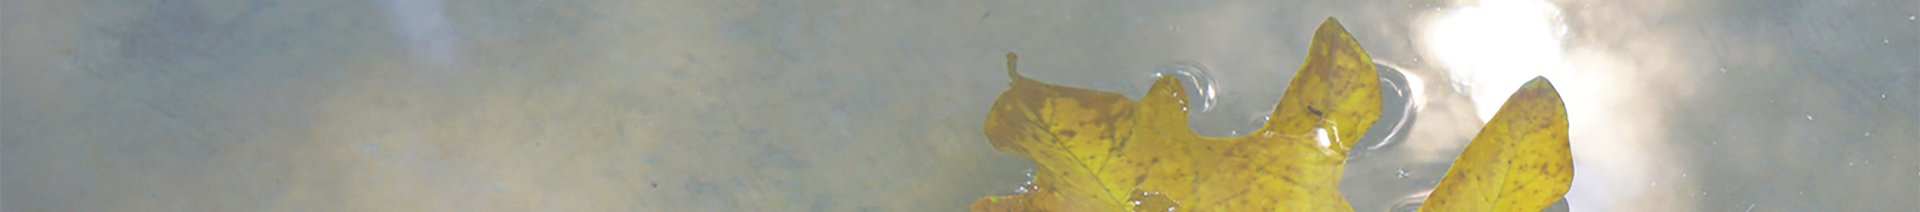 cropped-floatingleaf.header-1.png